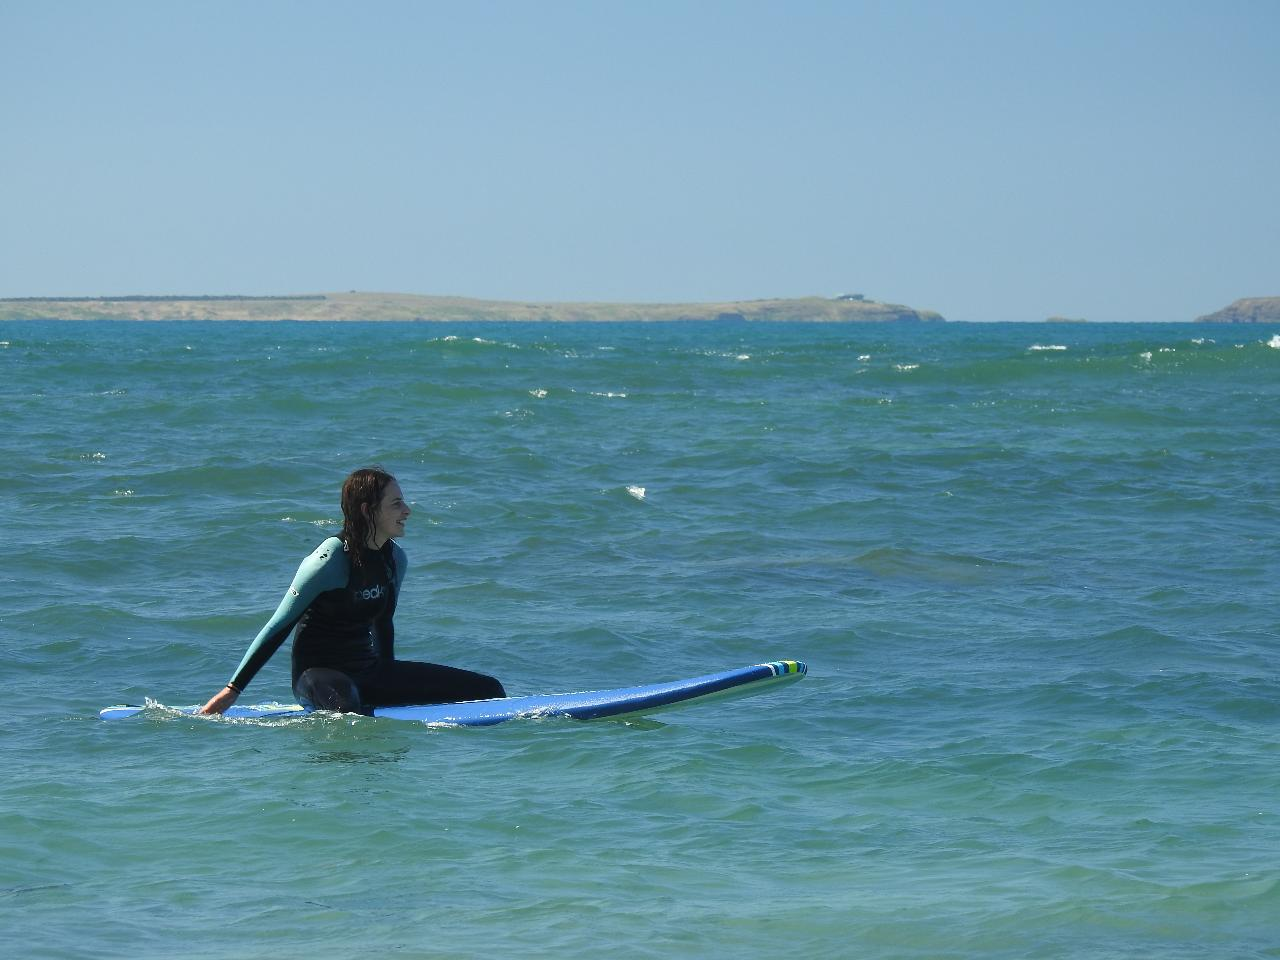 Learn to Surf Lesson - This Girl Can - Great Ocean Road Day Trip